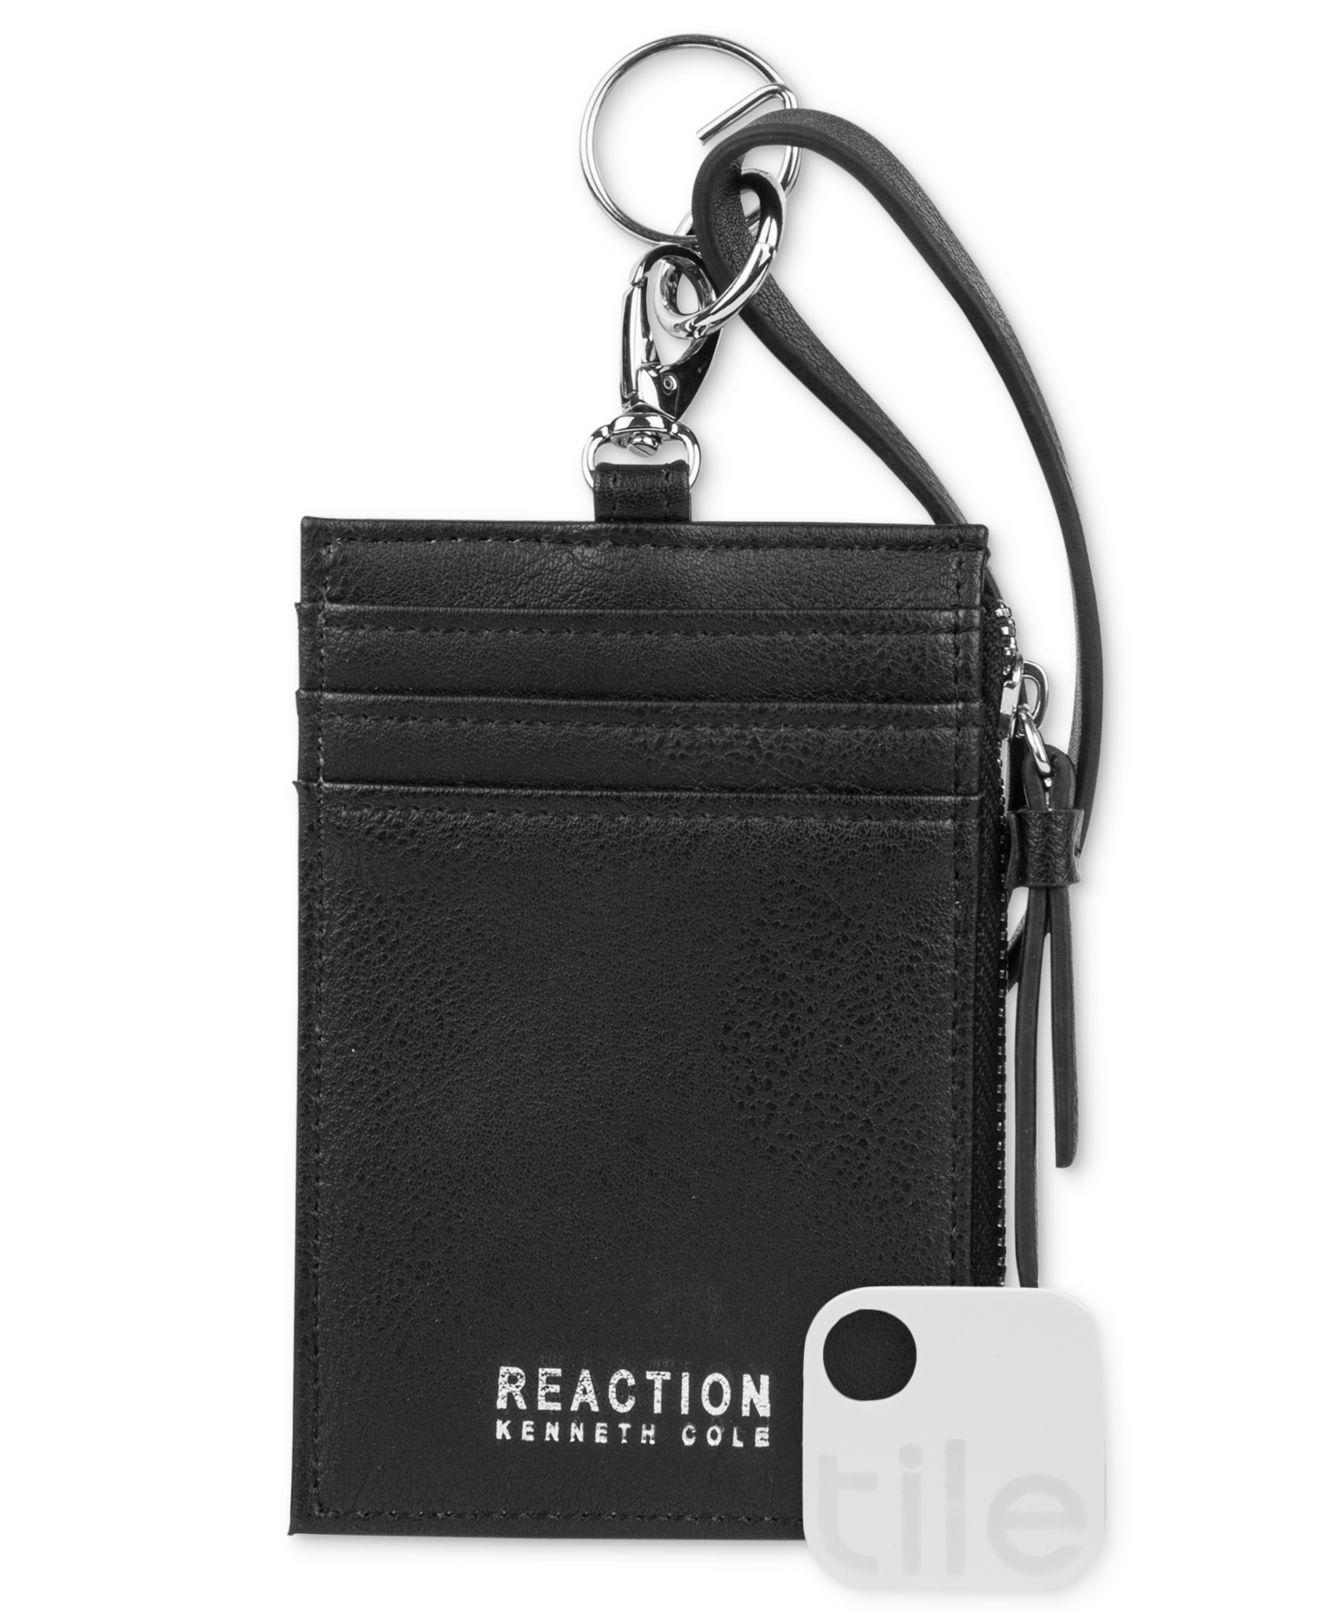 de55bf423ce0 Kenneth Cole Reaction Lanyard Wallet With Tracker in Black for Men ...